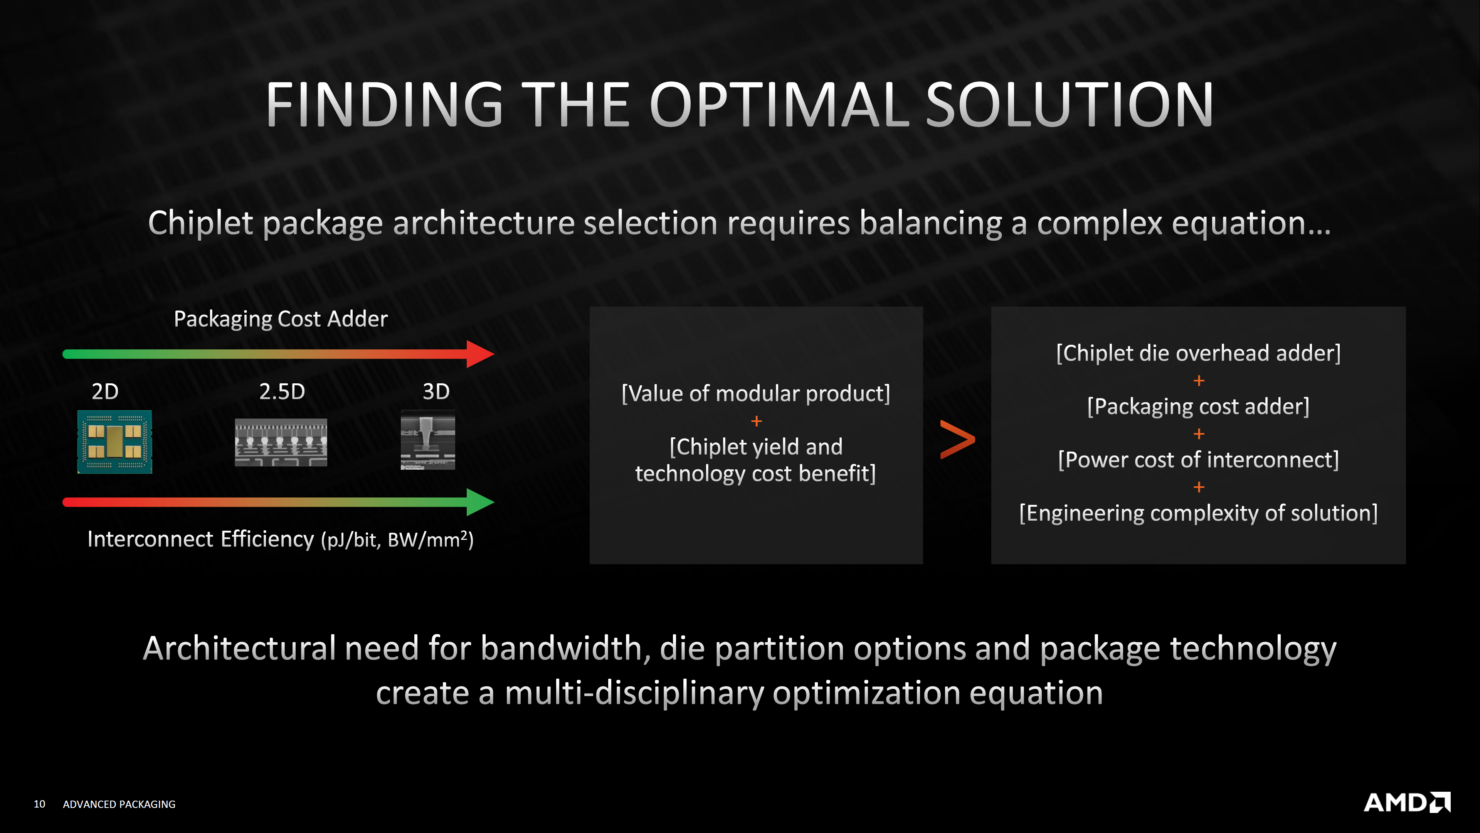 amd-advanced-3d-chiplet-packaging-3d-stacking-technologies-3d-v-cache-_9